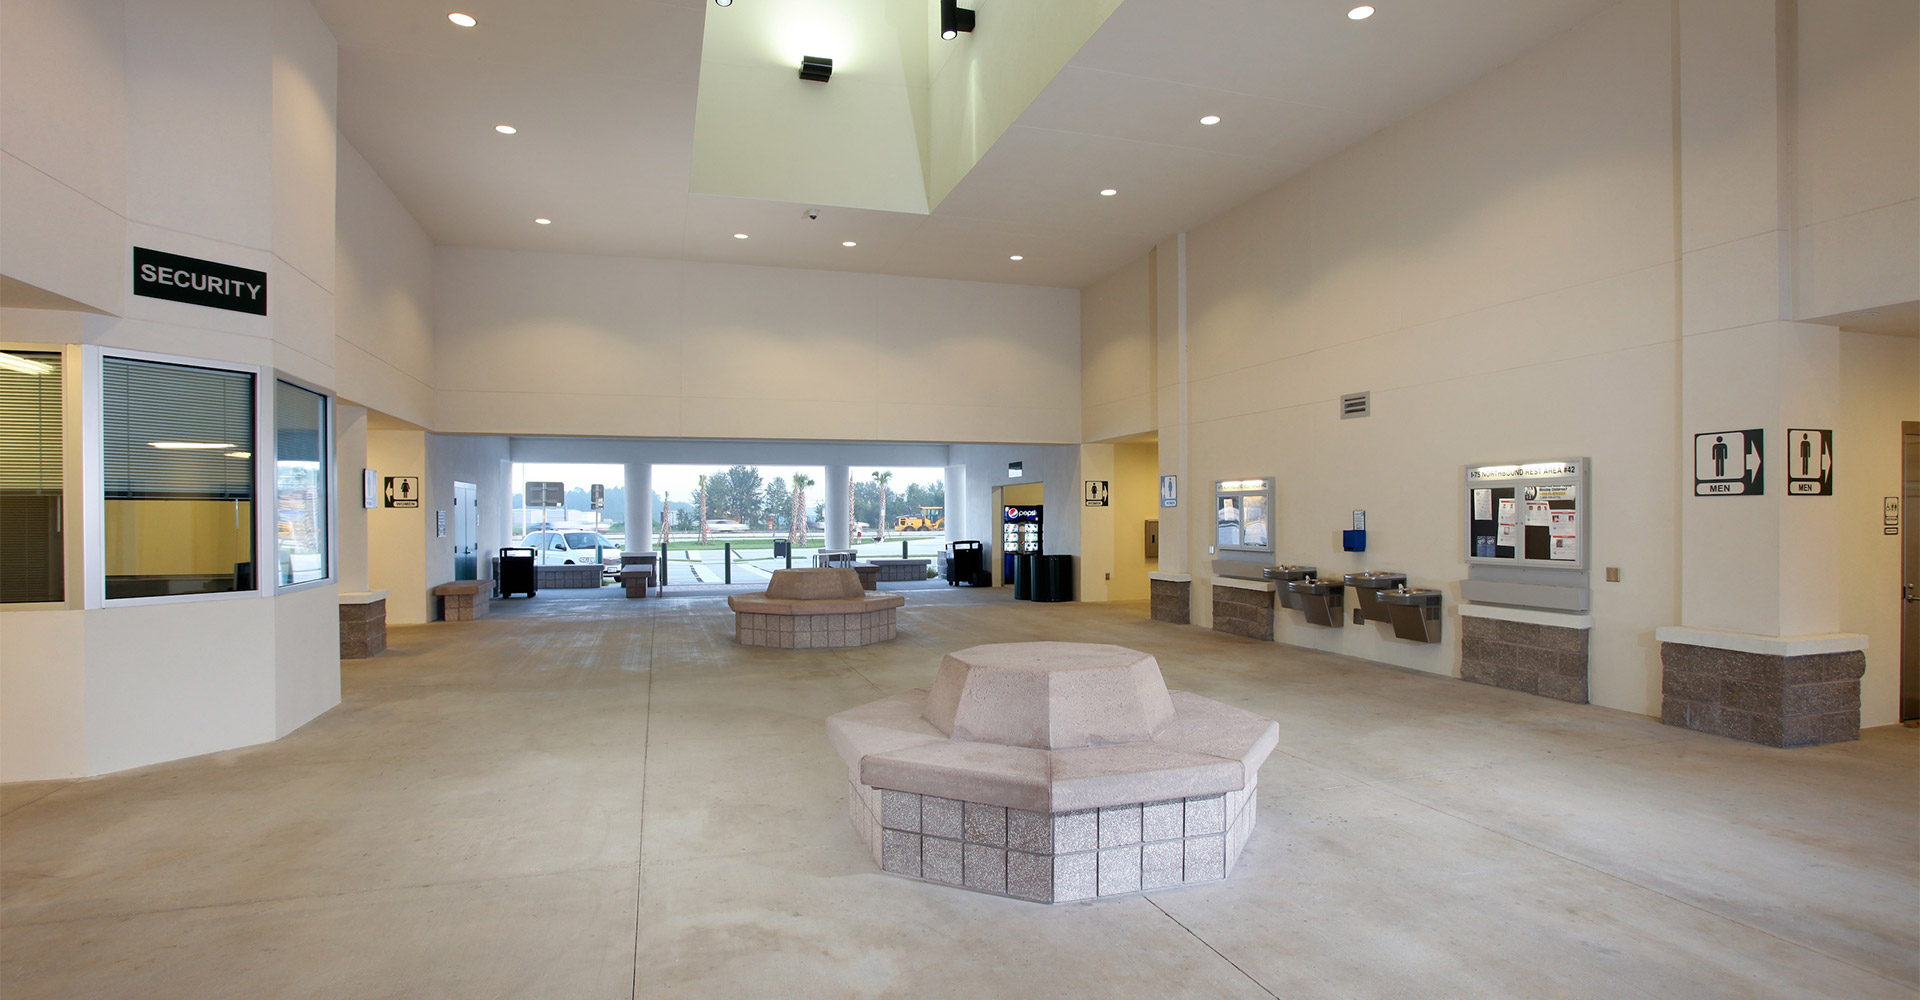 Interior of I-75 rest area.